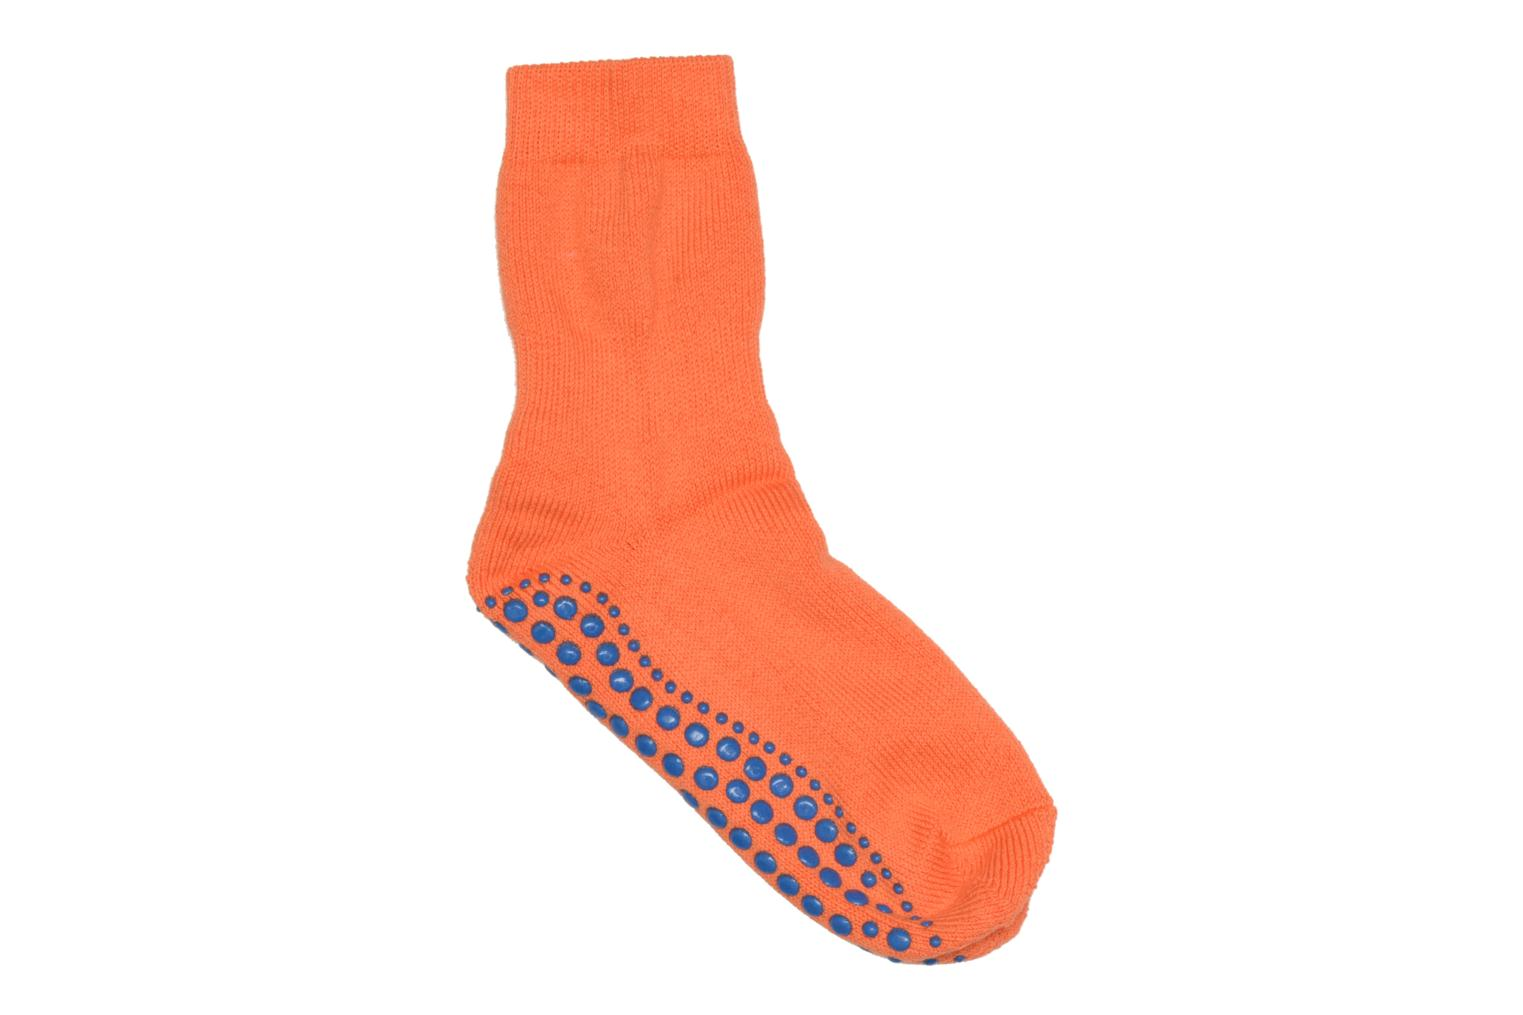 Chaussons-chaussettes Enfant Coton Anti-dérapant Catspads SO 8158 Red-orange